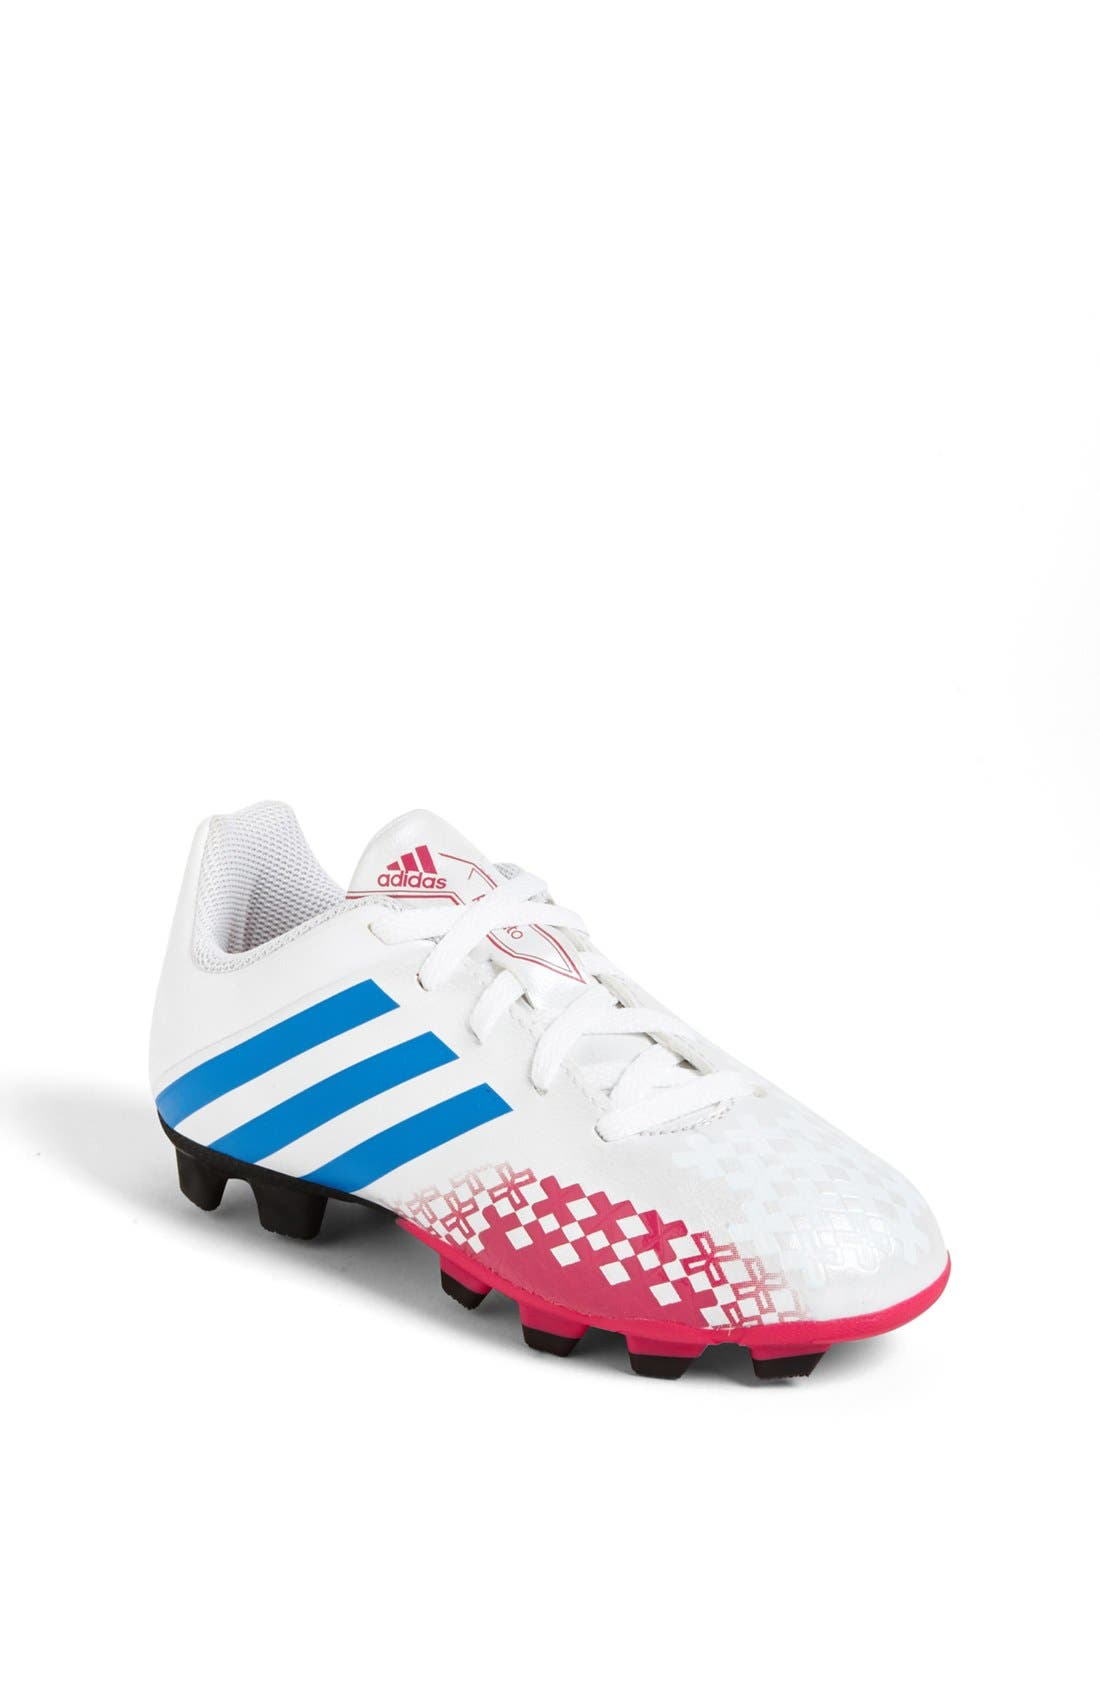 Alternate Image 1 Selected - adidas 'Predito LZ TRX FG' Soccer Cleat (Toddler, Little Kid & Big Kid)